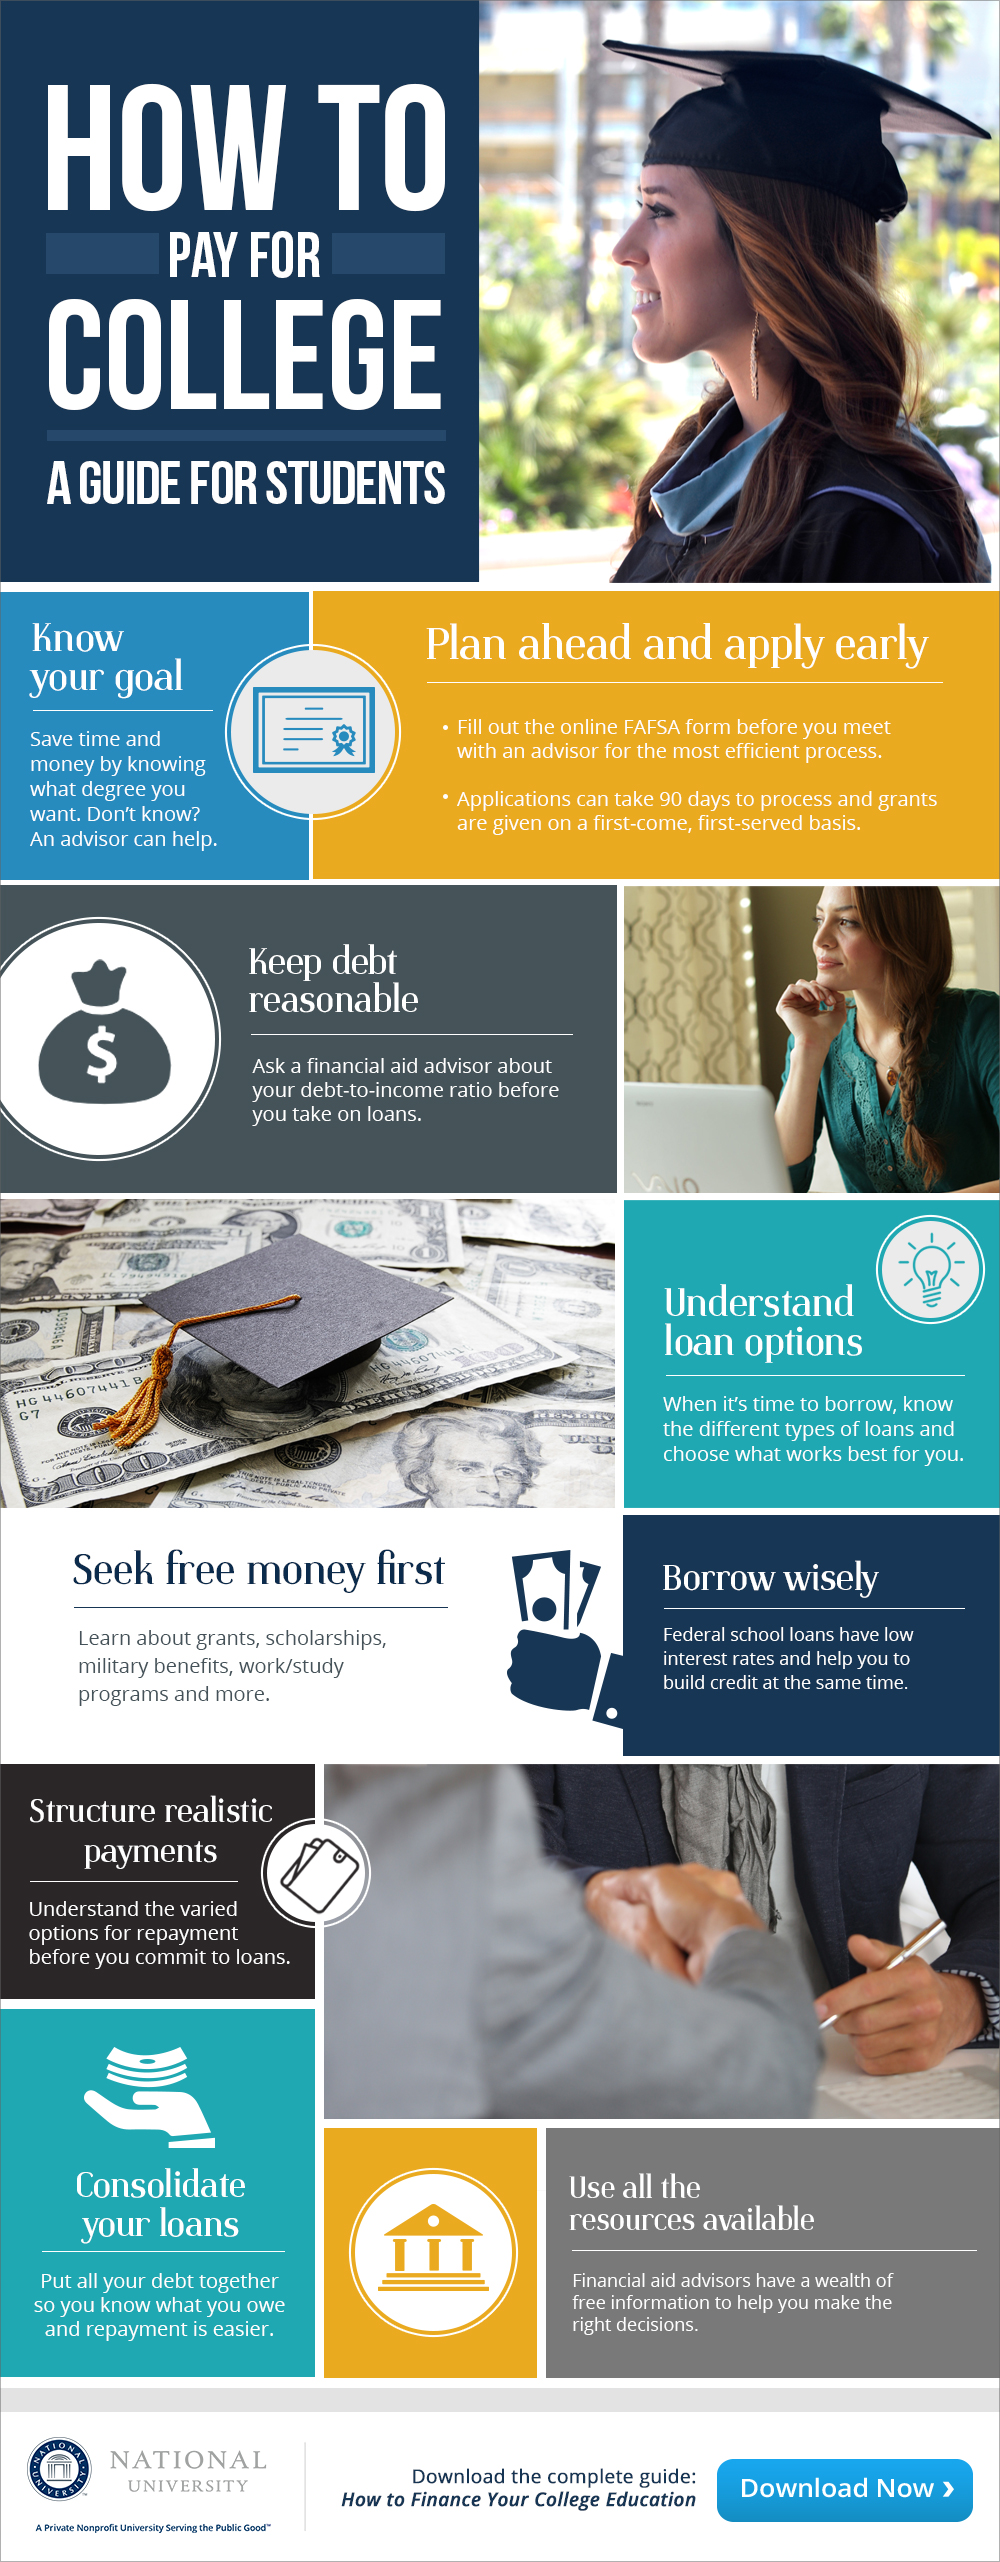 9 Quick Tips On How To Pay For College